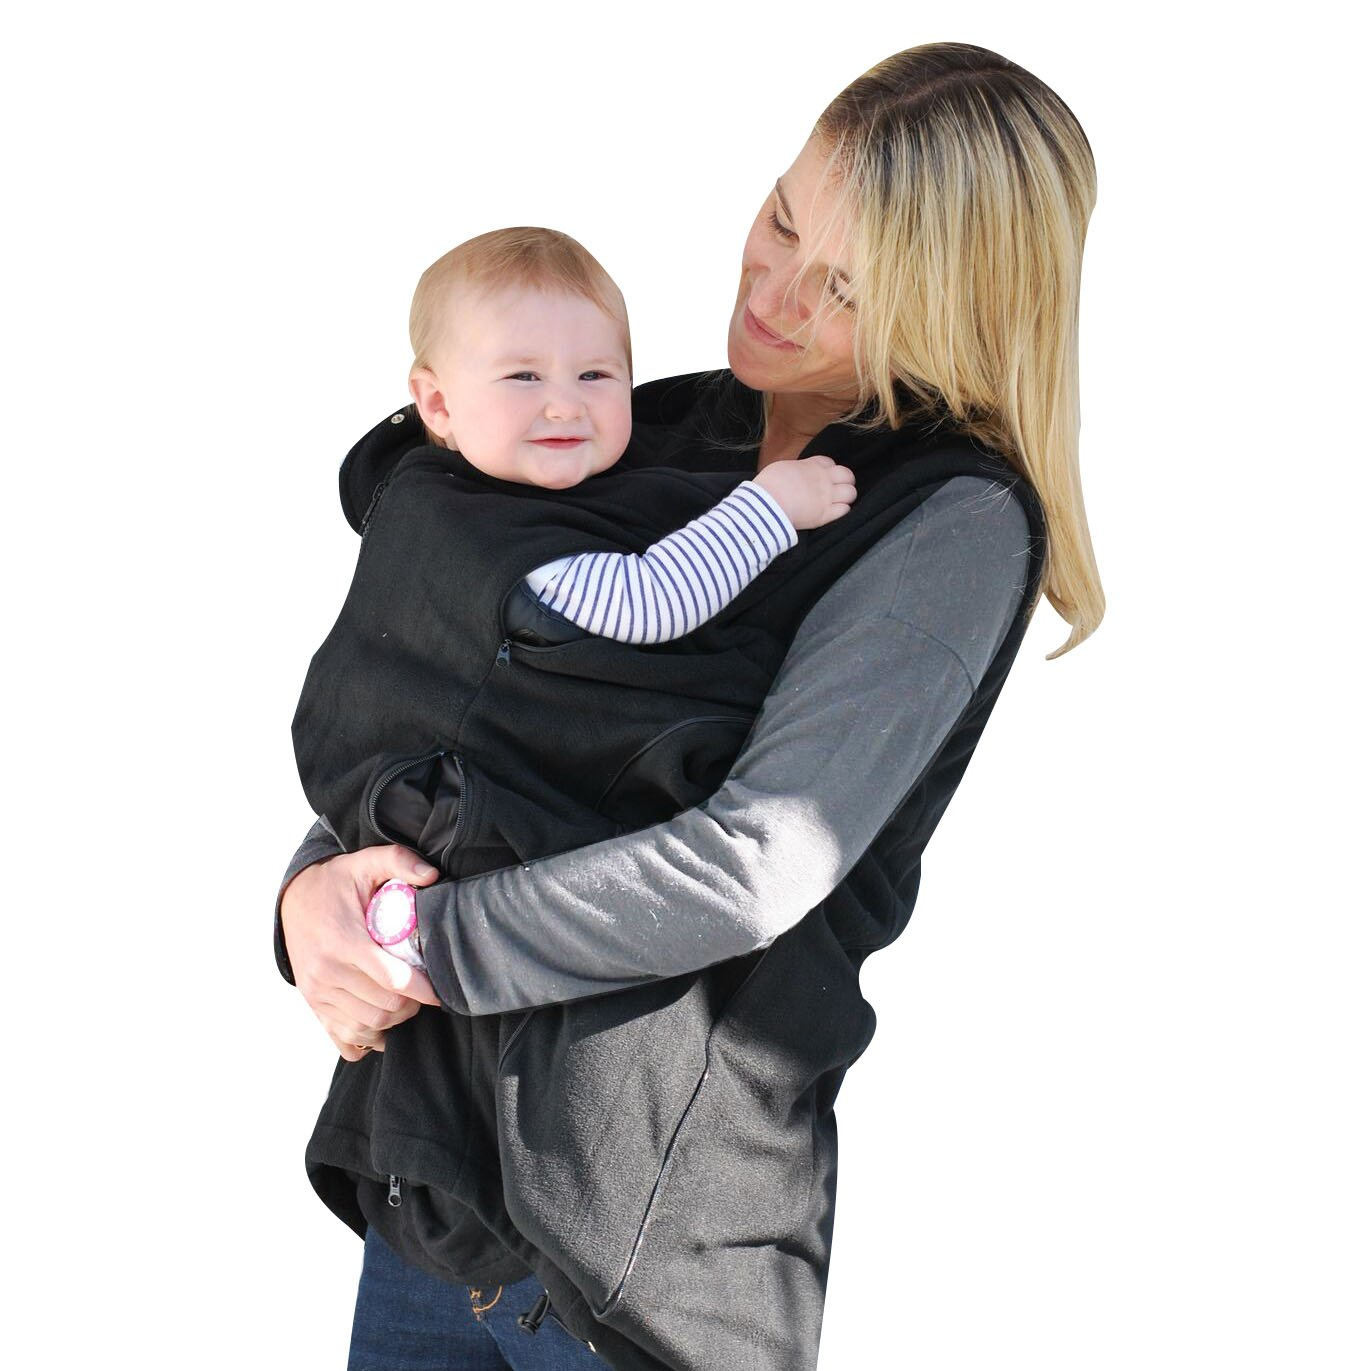 B&me Expandable Womens Vest Designed to Accommodate Baby Sling Or Baby Carrier for Women (with Black Sides) (Medium)